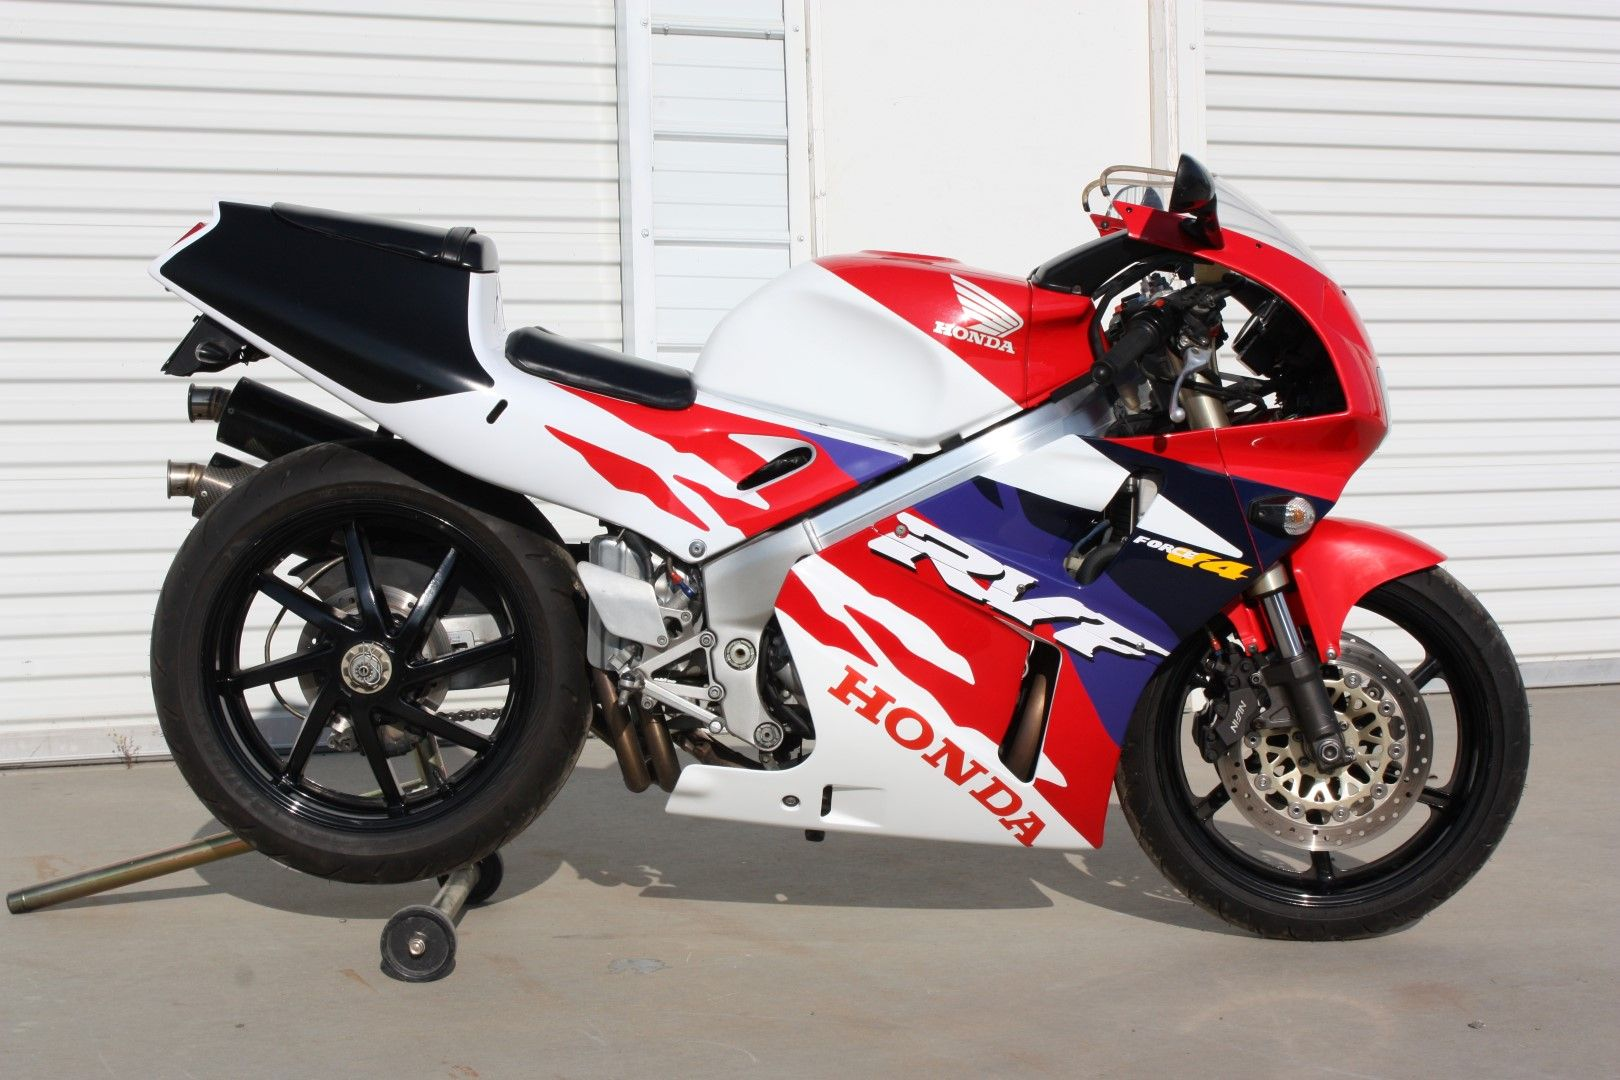 NC35 Archives - Rare SportBikes For Sale